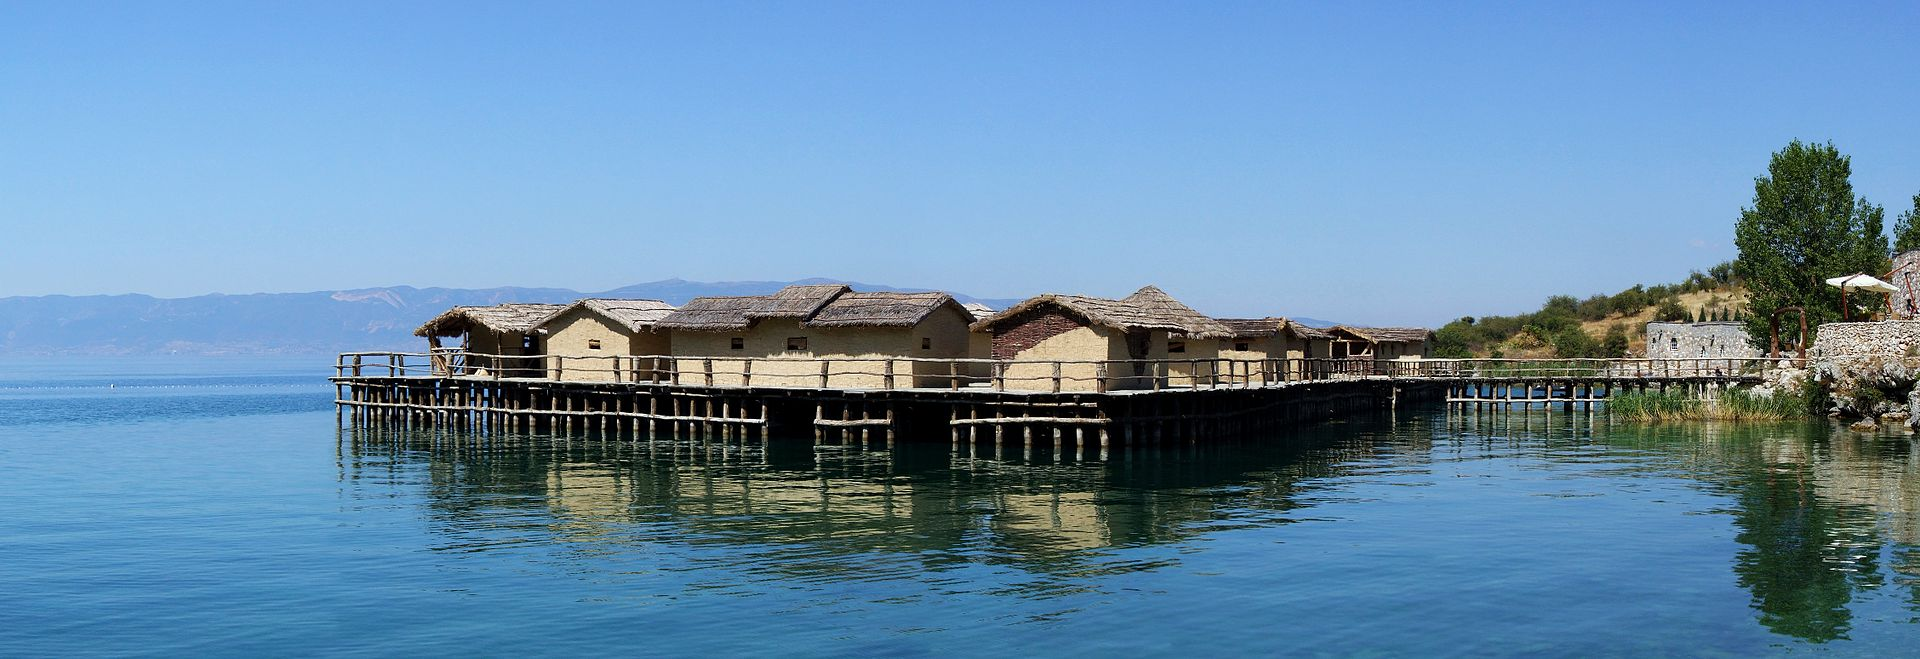 Museum_on_Water,_Ohrid